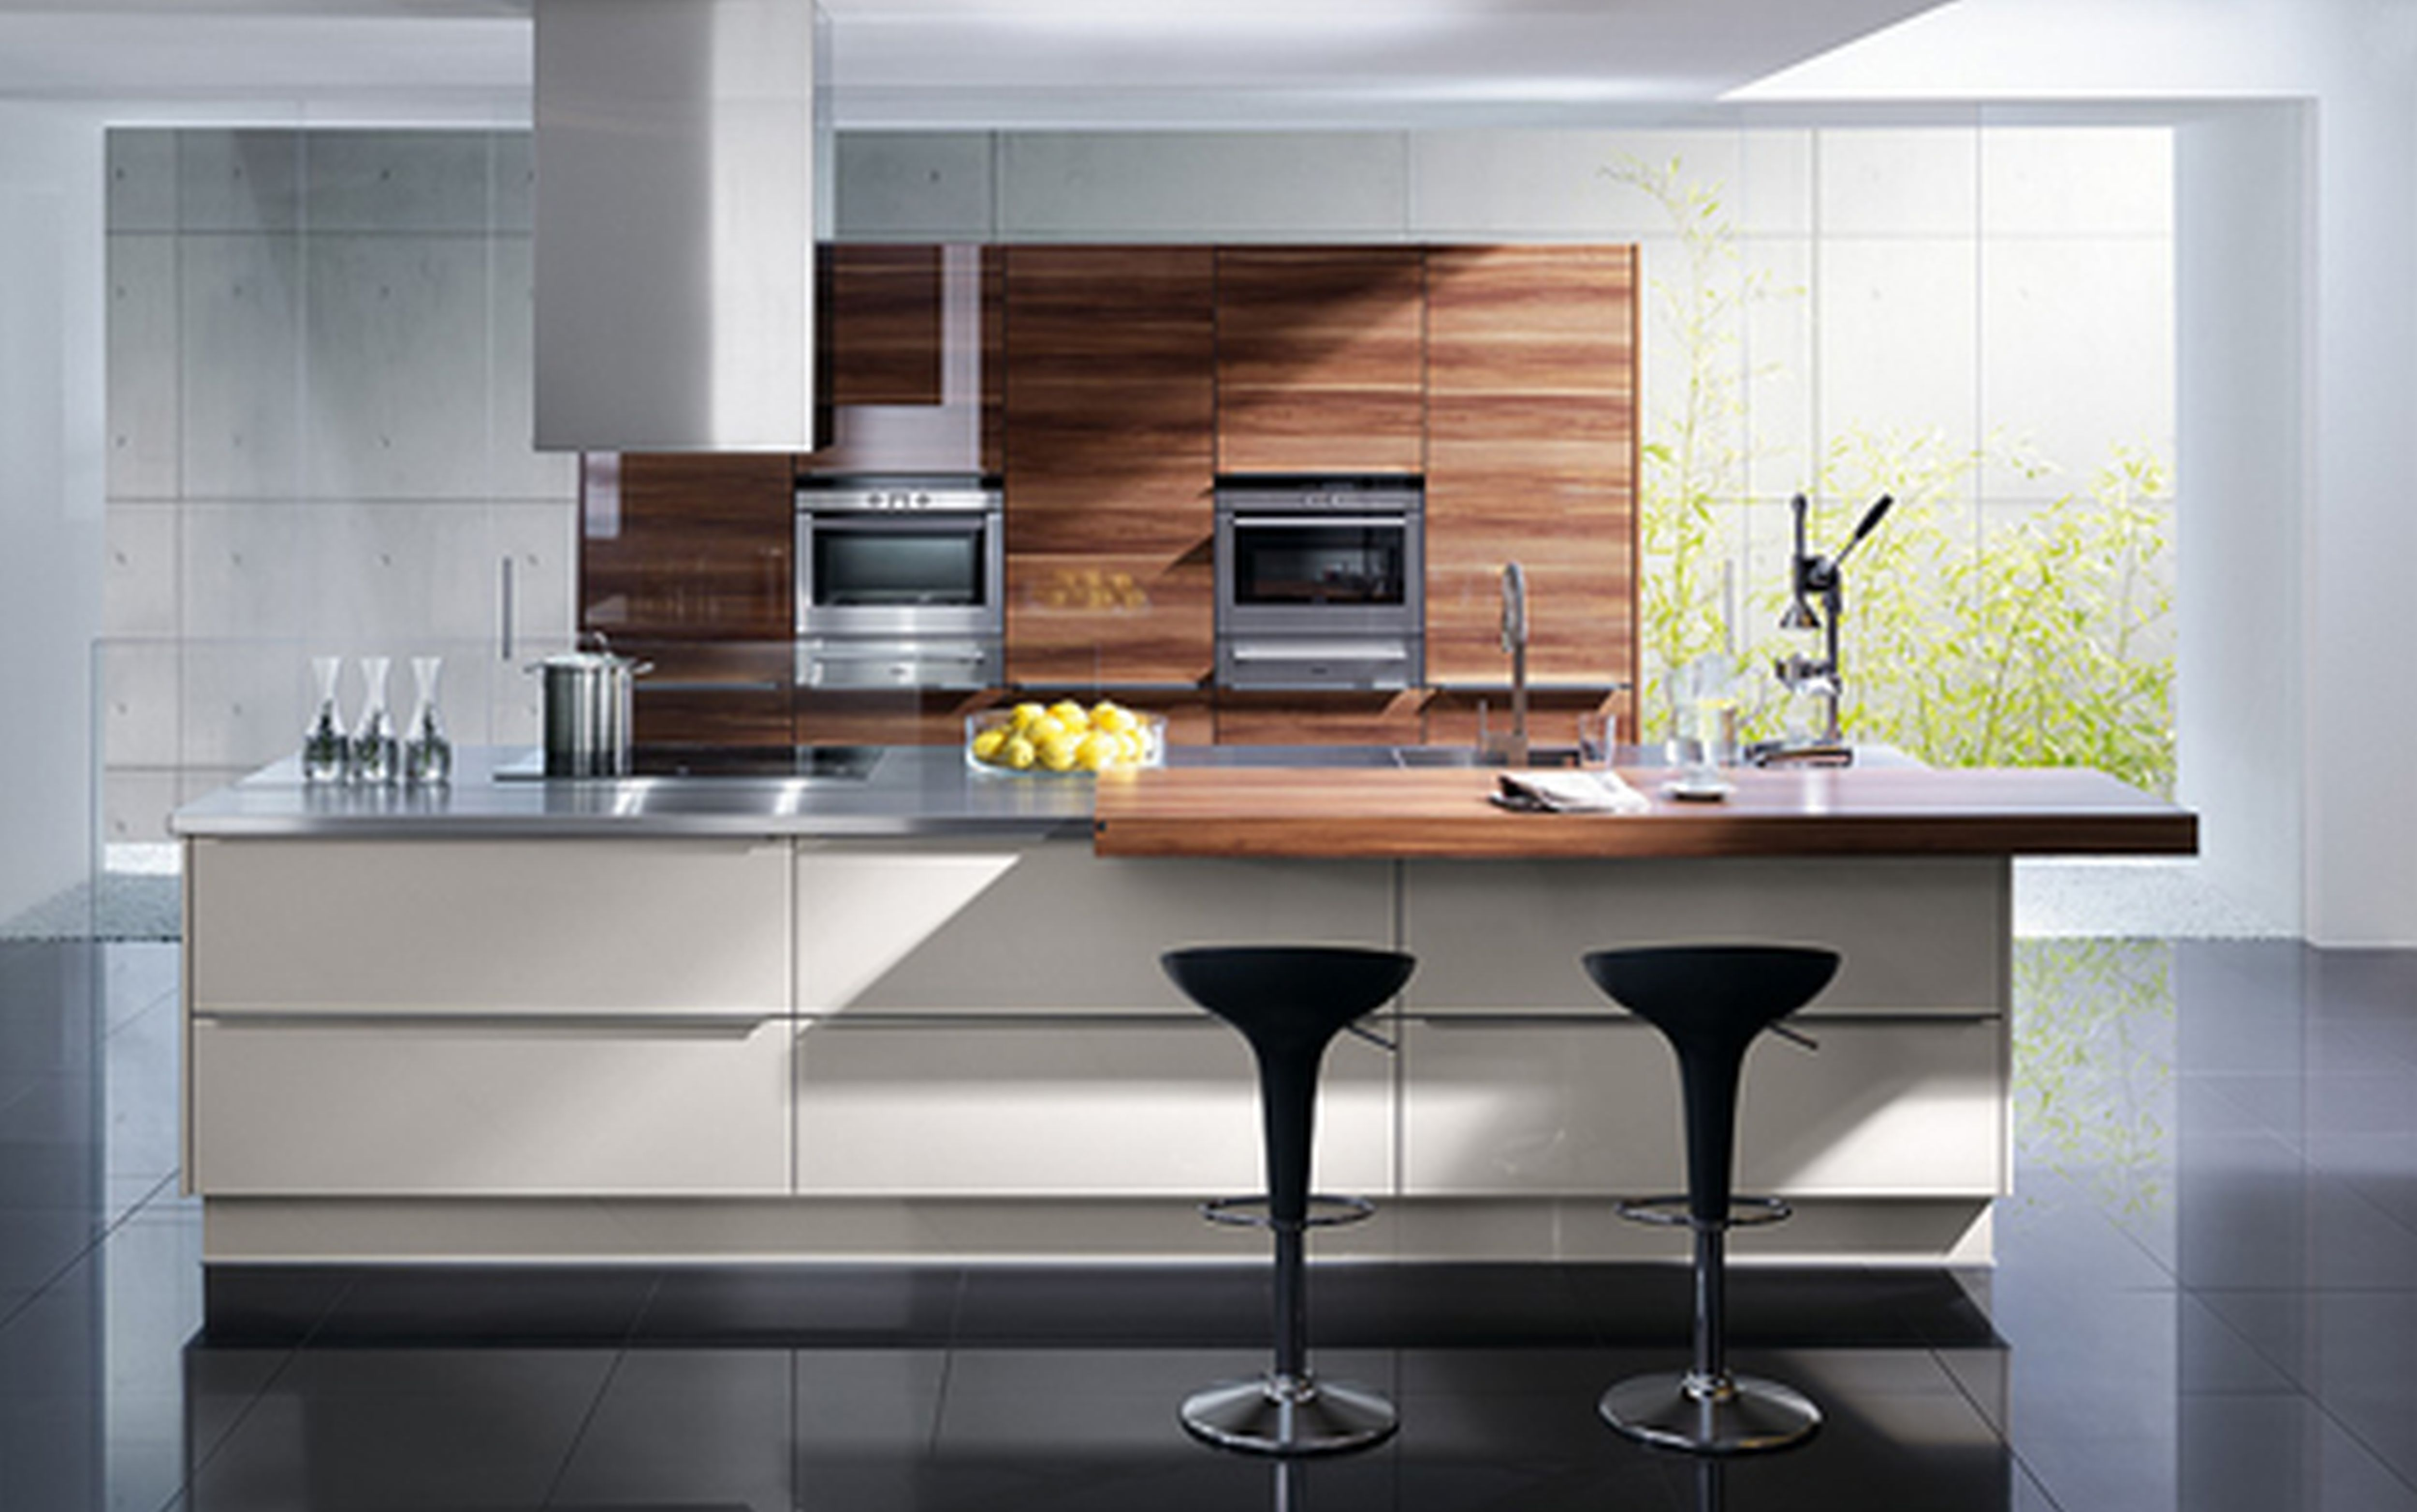 Astounding Kitchen Countertop Materials Decor Fetching Kitchen Endearing Design Your Kitchen Online Free Decorating Inspiration